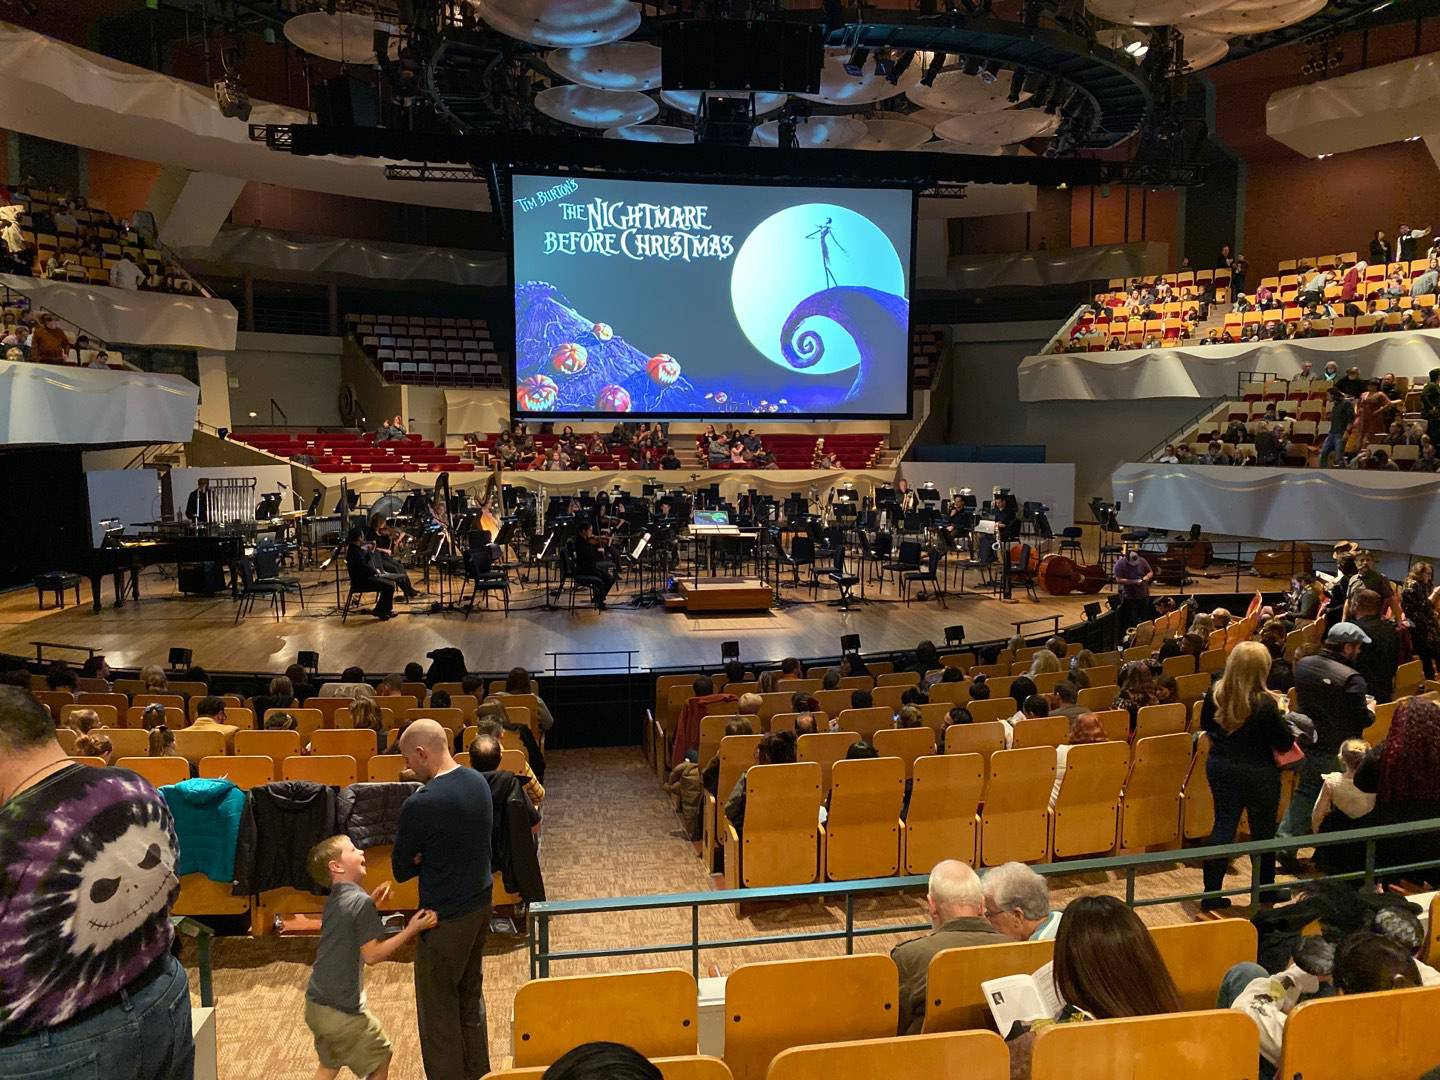 Boettcher Concert Hall Section Orch 2 Row N Seat 40